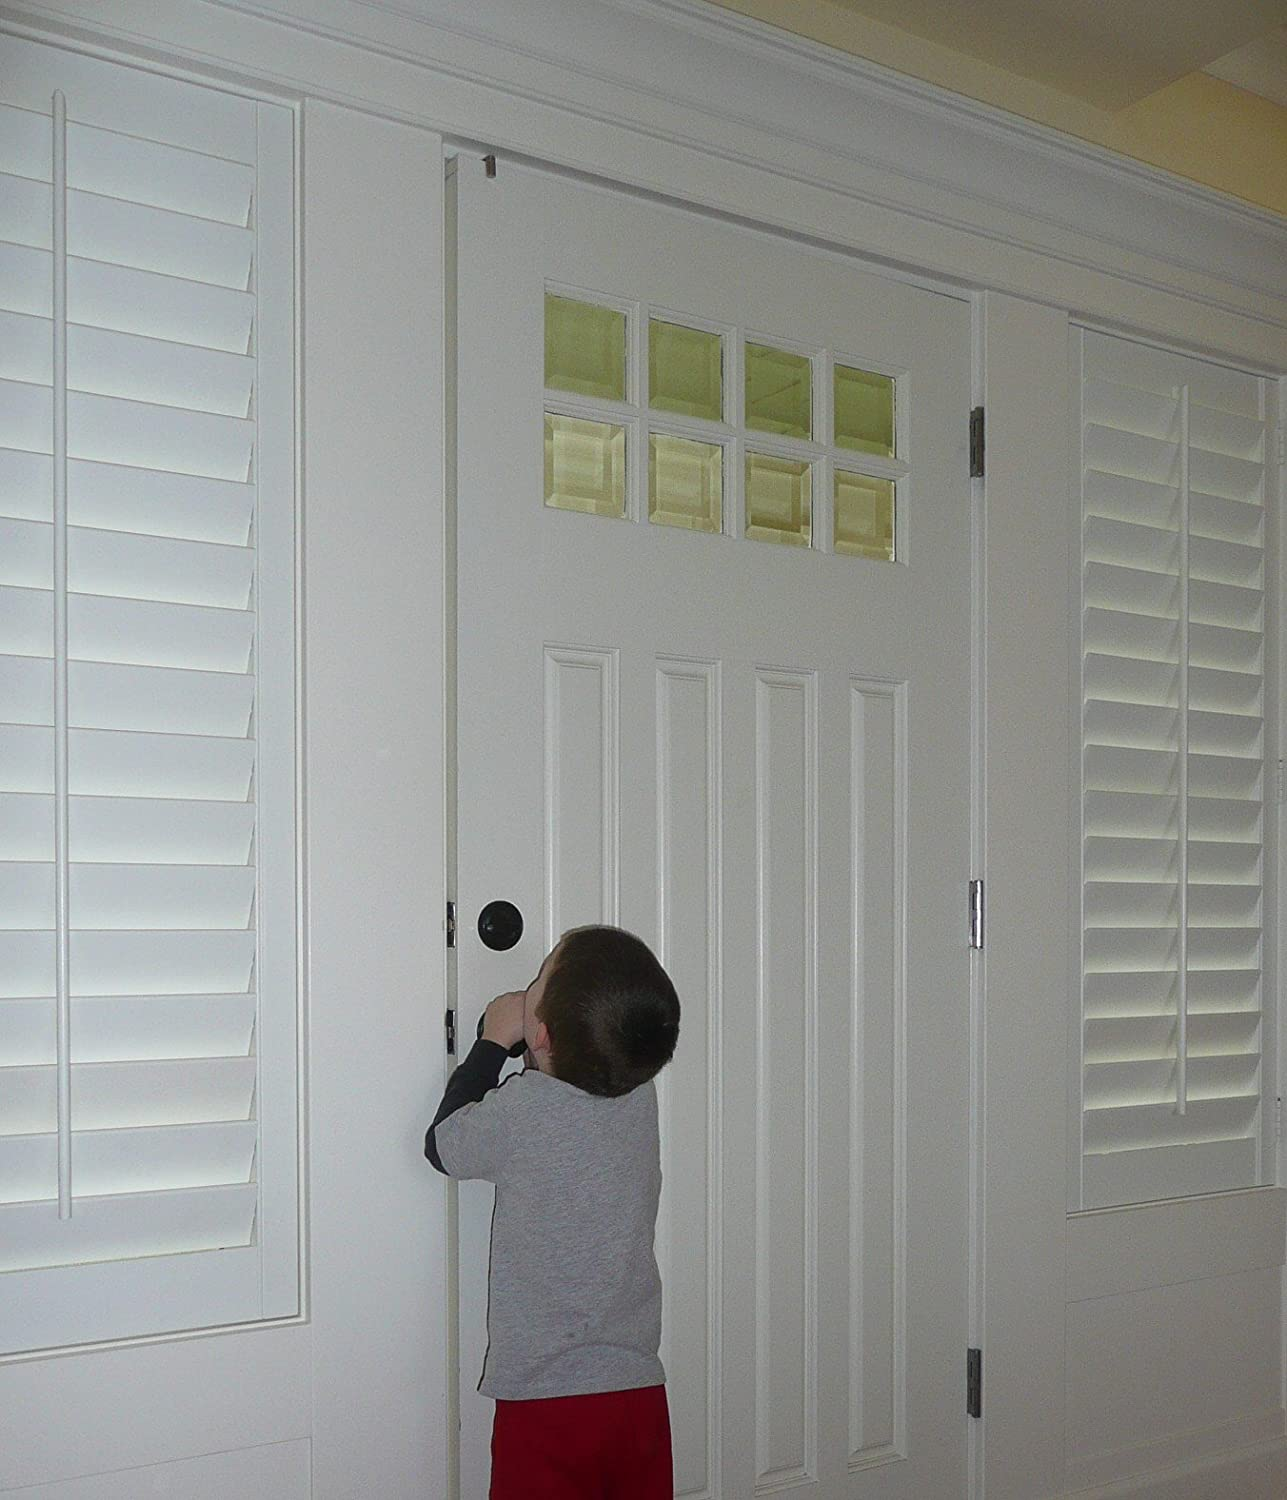 Child Proof Locks For Exterior Doors Gallery Doors Design Modern